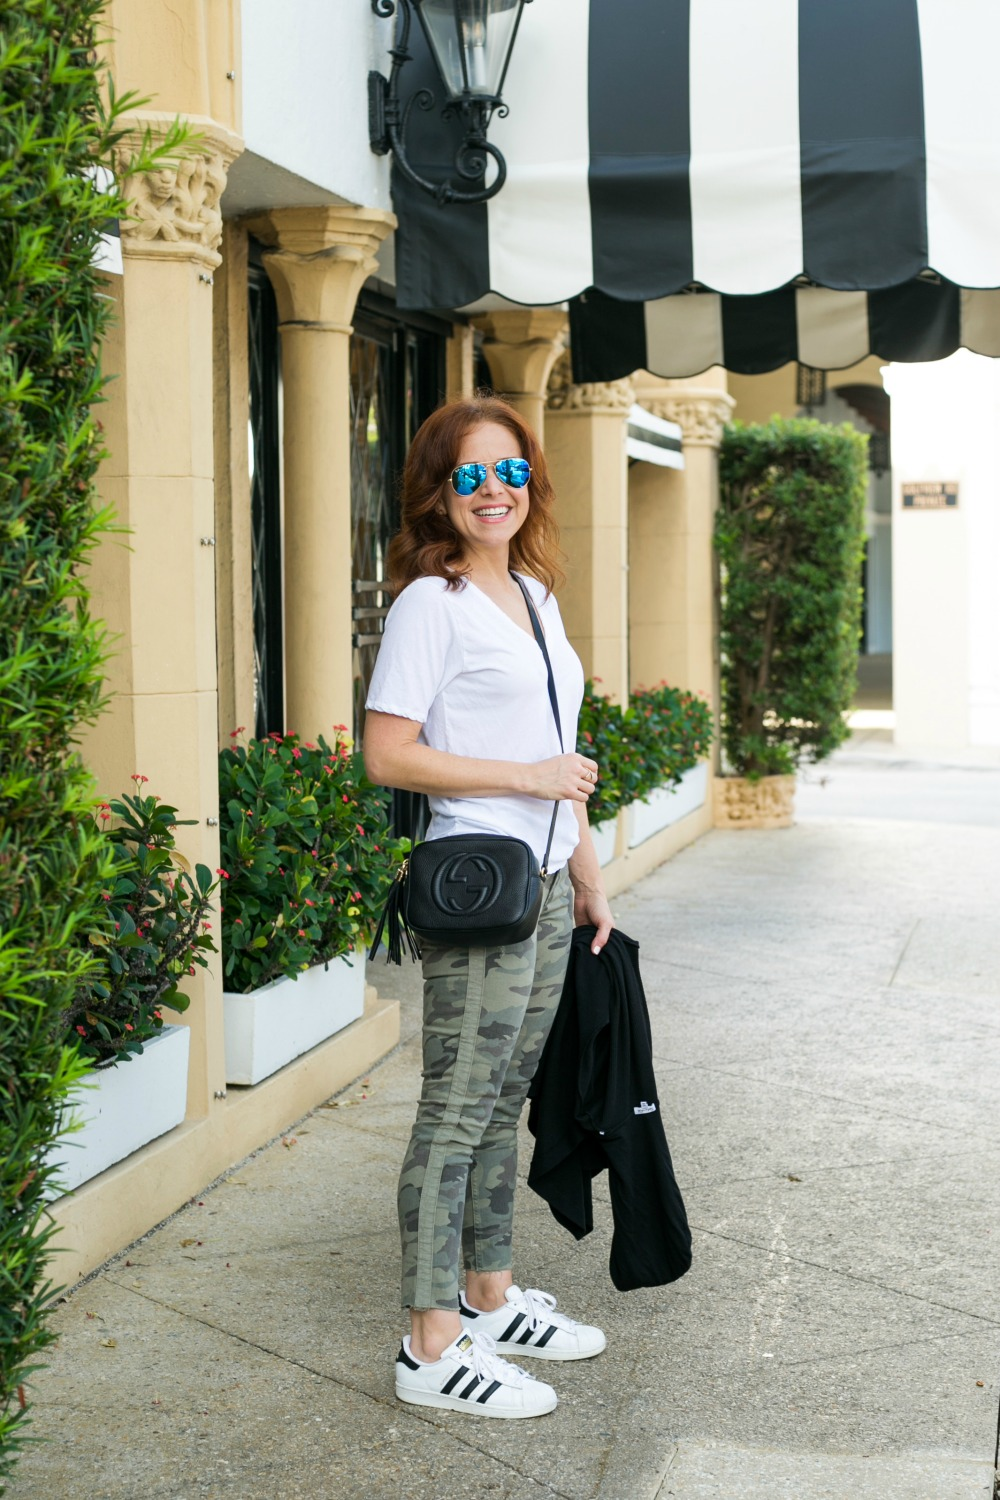 #fallstyle #casualstyle #weekendwear   Fall Trends in Warm Weather: Zara Camo Pants Two Ways featured by popular Florida fashion blogger The Modern Savvy